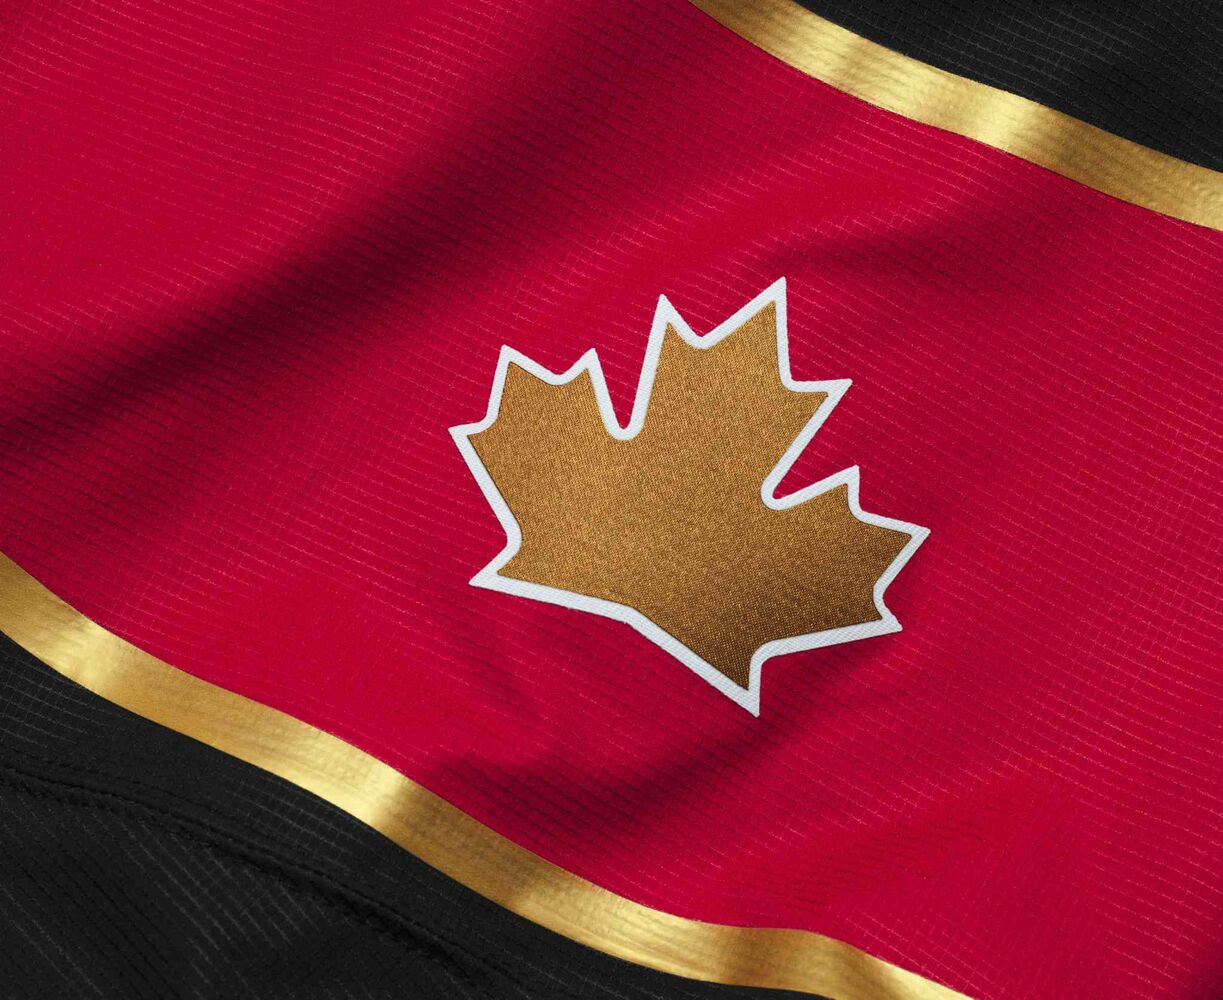 """These jerseys are distinctly Canadian and will ignite our nation's pride each time Canada's athletes take to the ice to represent their country and the Canadian Olympic and Paralympic teams."" - Bob Nicholson, Hockey Canada president."